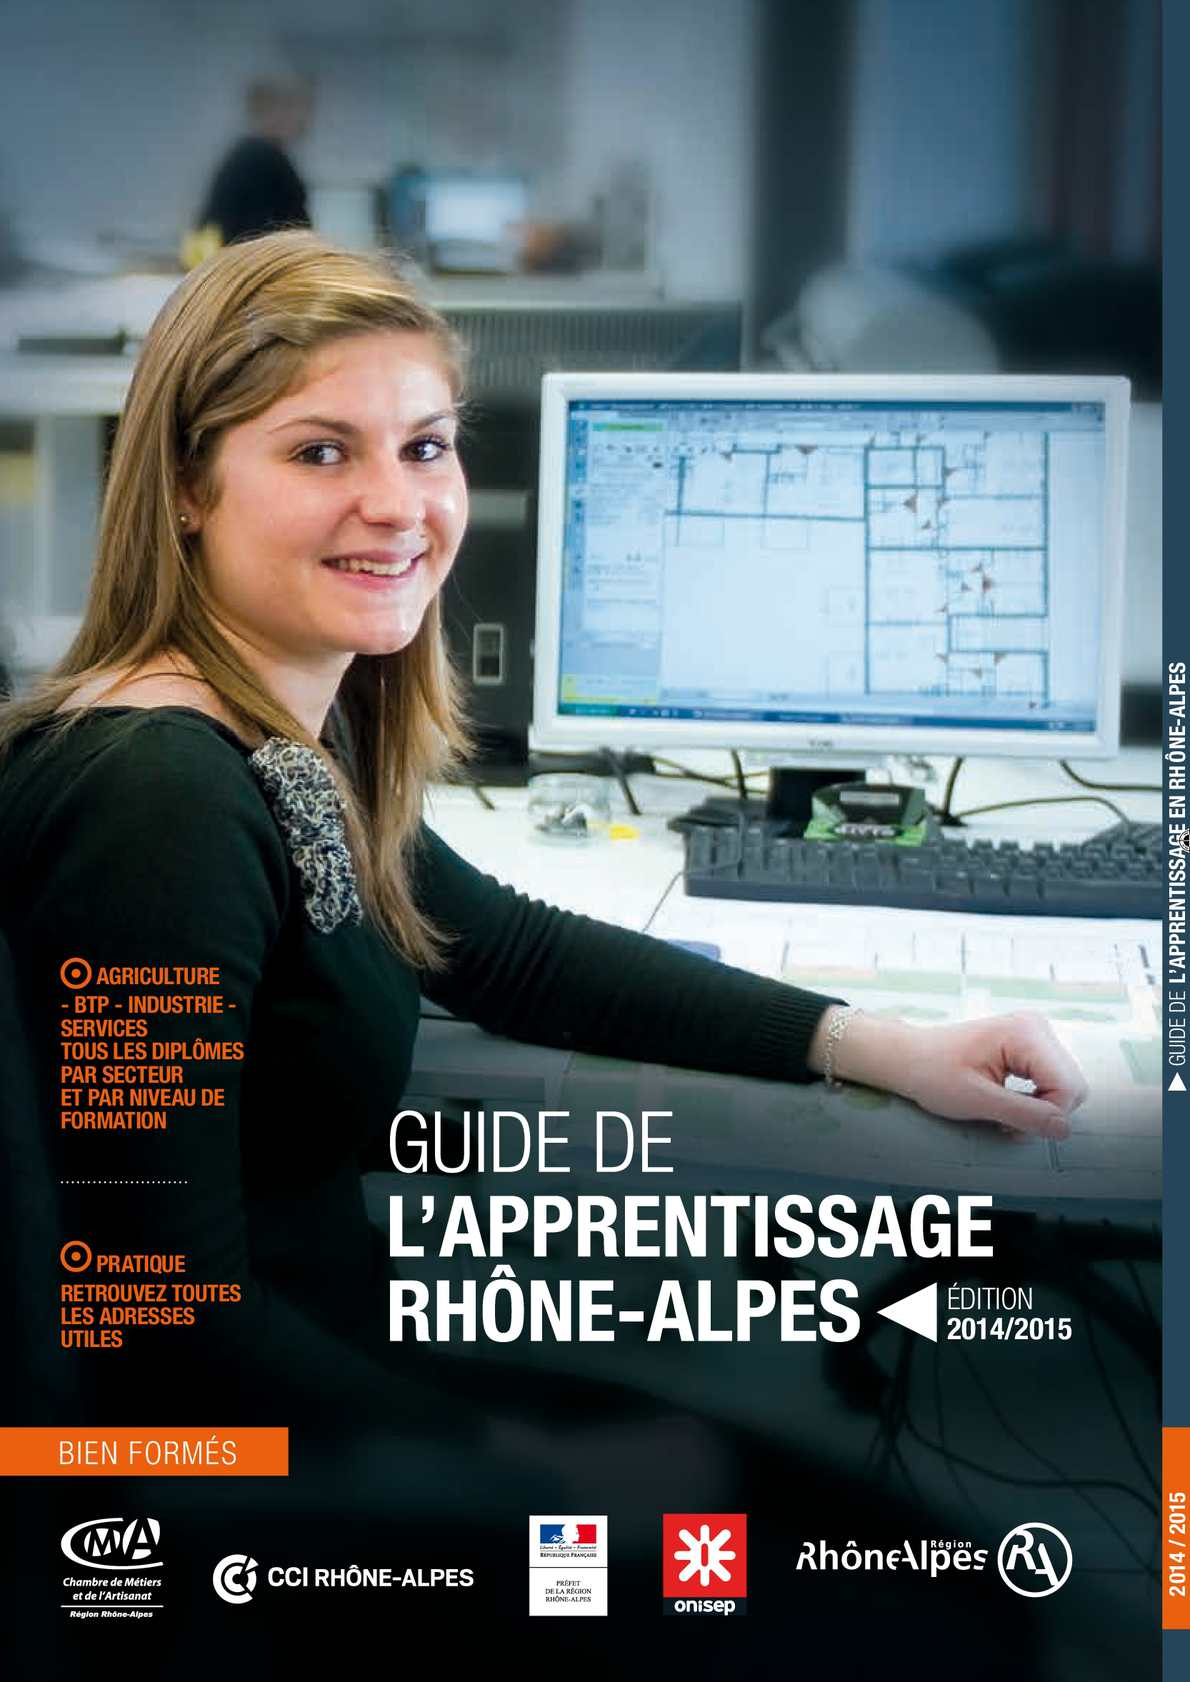 Calam o guide de l 39 apprentissage rentree 2014 rhone alpes for Chambre consulaire apprentissage